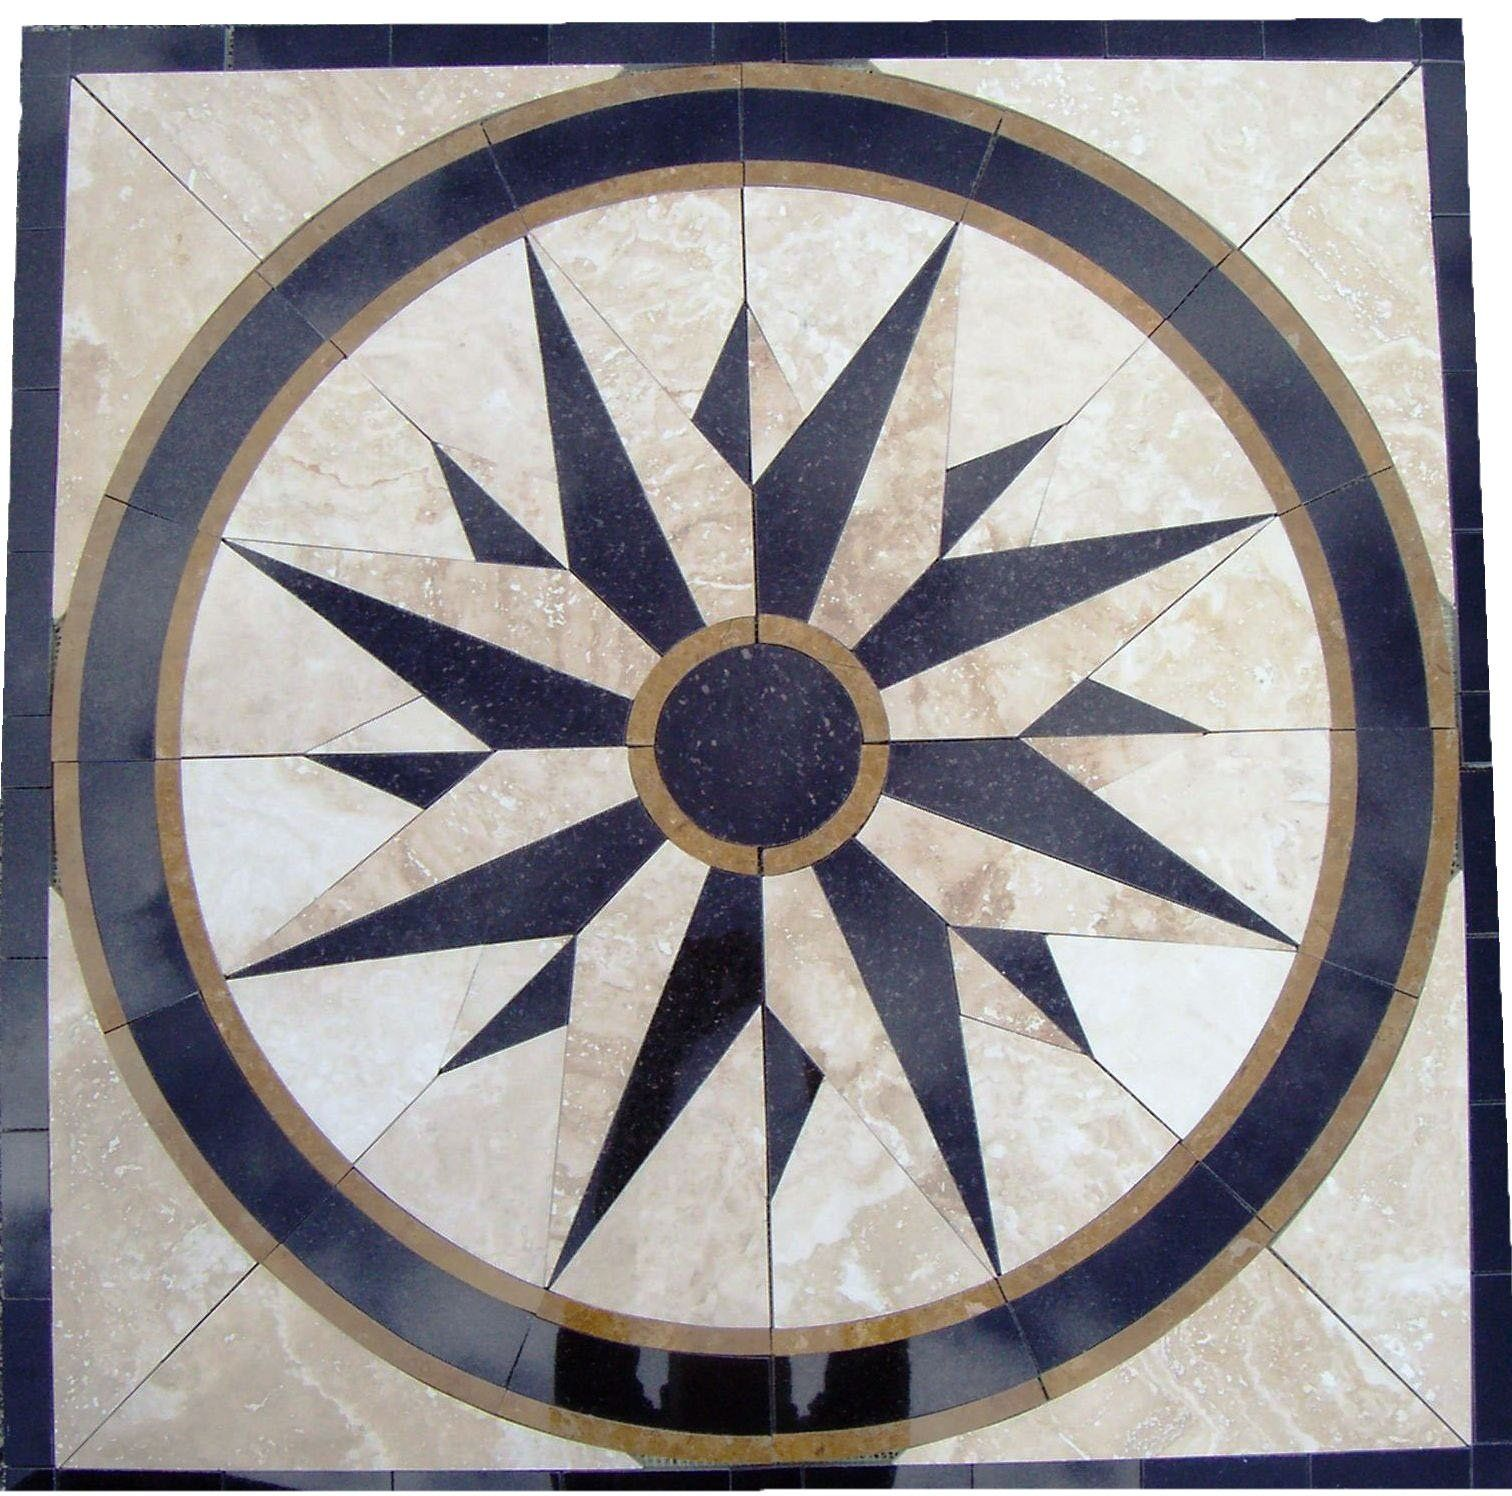 Circular Marble Inlay Flooring : Tile floor medallion marble mosaic north star design